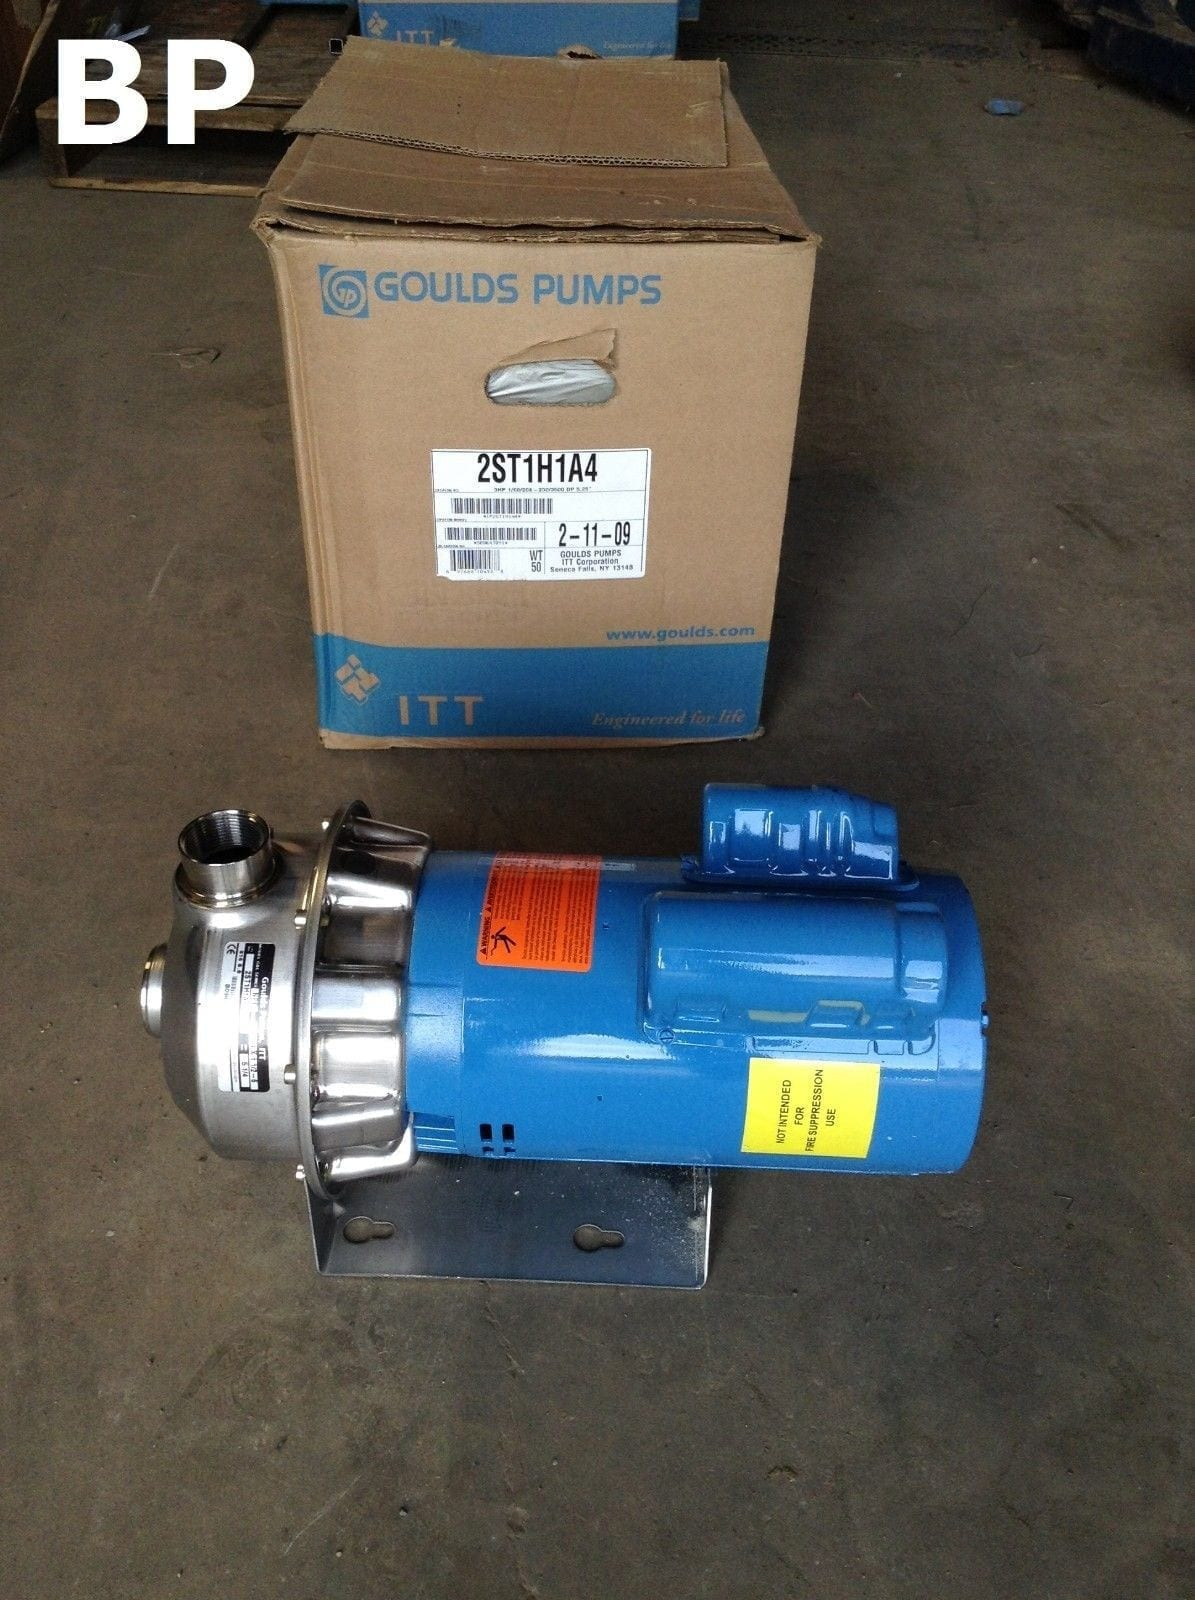 Goulds Pumps 2st1h1a4 Stainless Steel Centrifugal Pump 1ph